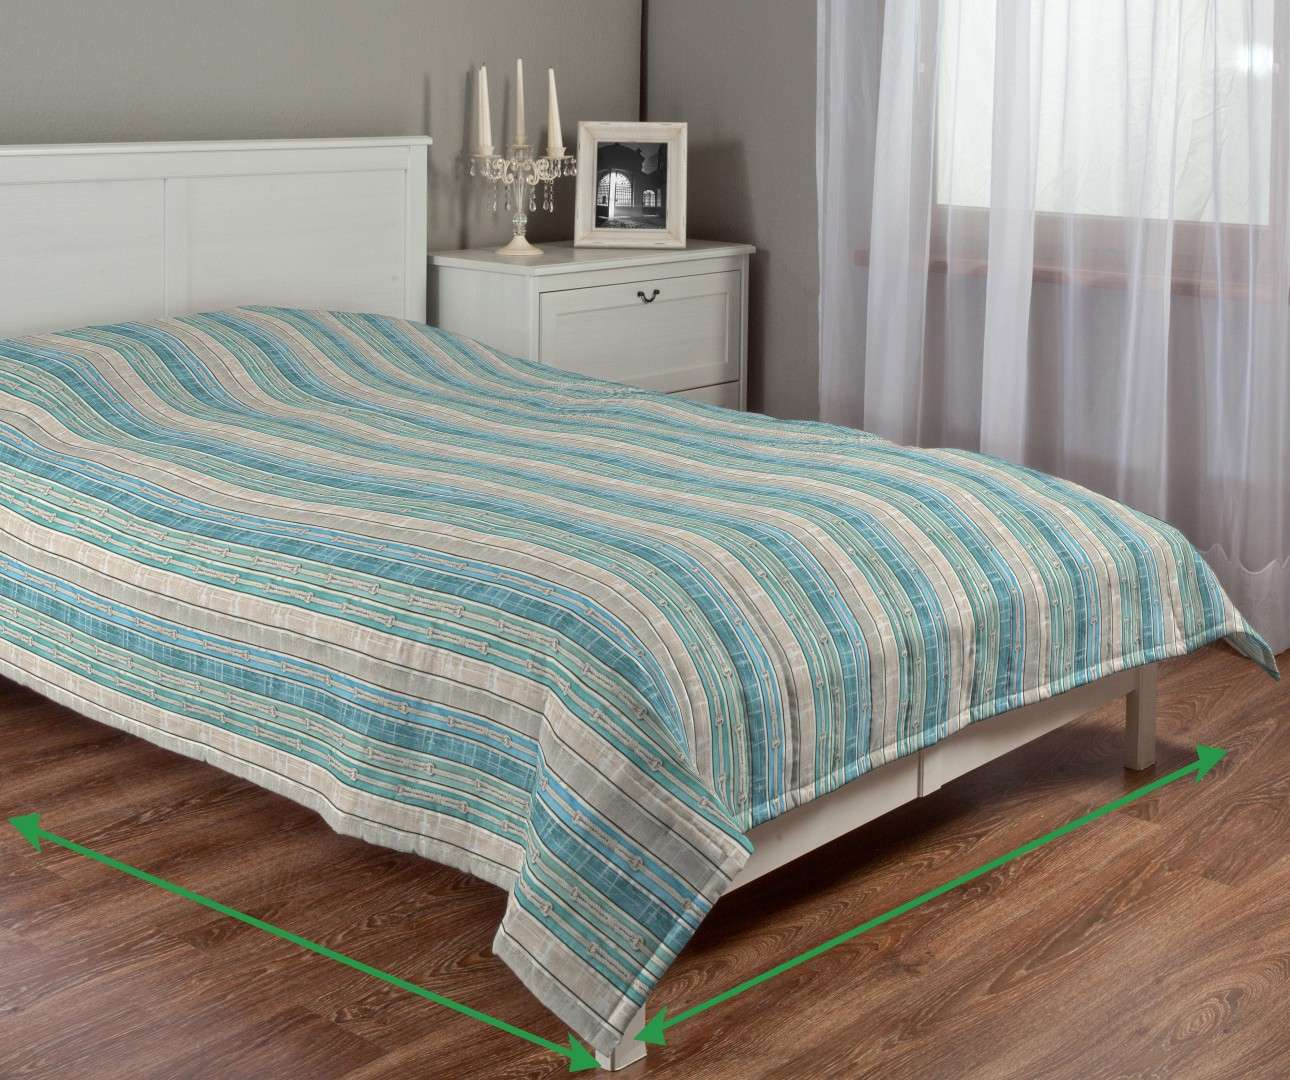 Quilted throw (vertical quilt pattern) in collection Marina, fabric: 140-14